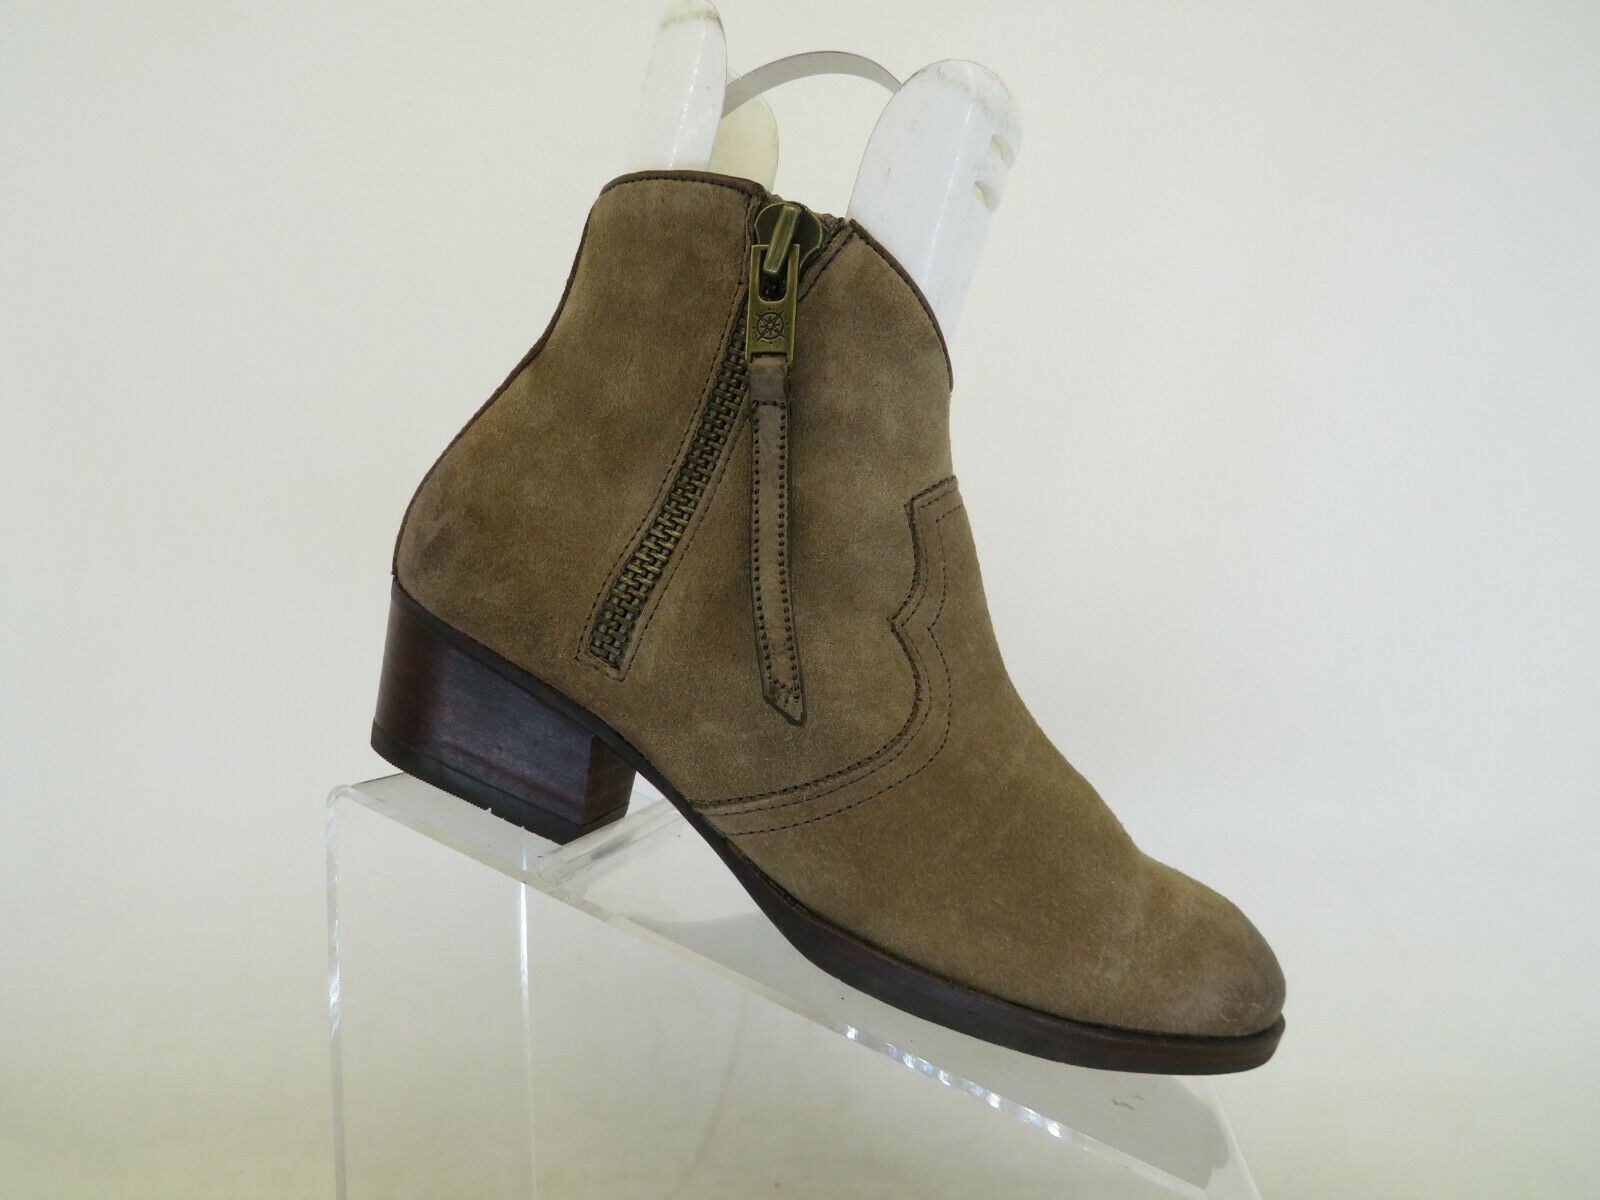 Bussola Brown Distressed Suede Leather Zip Heeled Ankle Boots Bootie Size 39 EUR